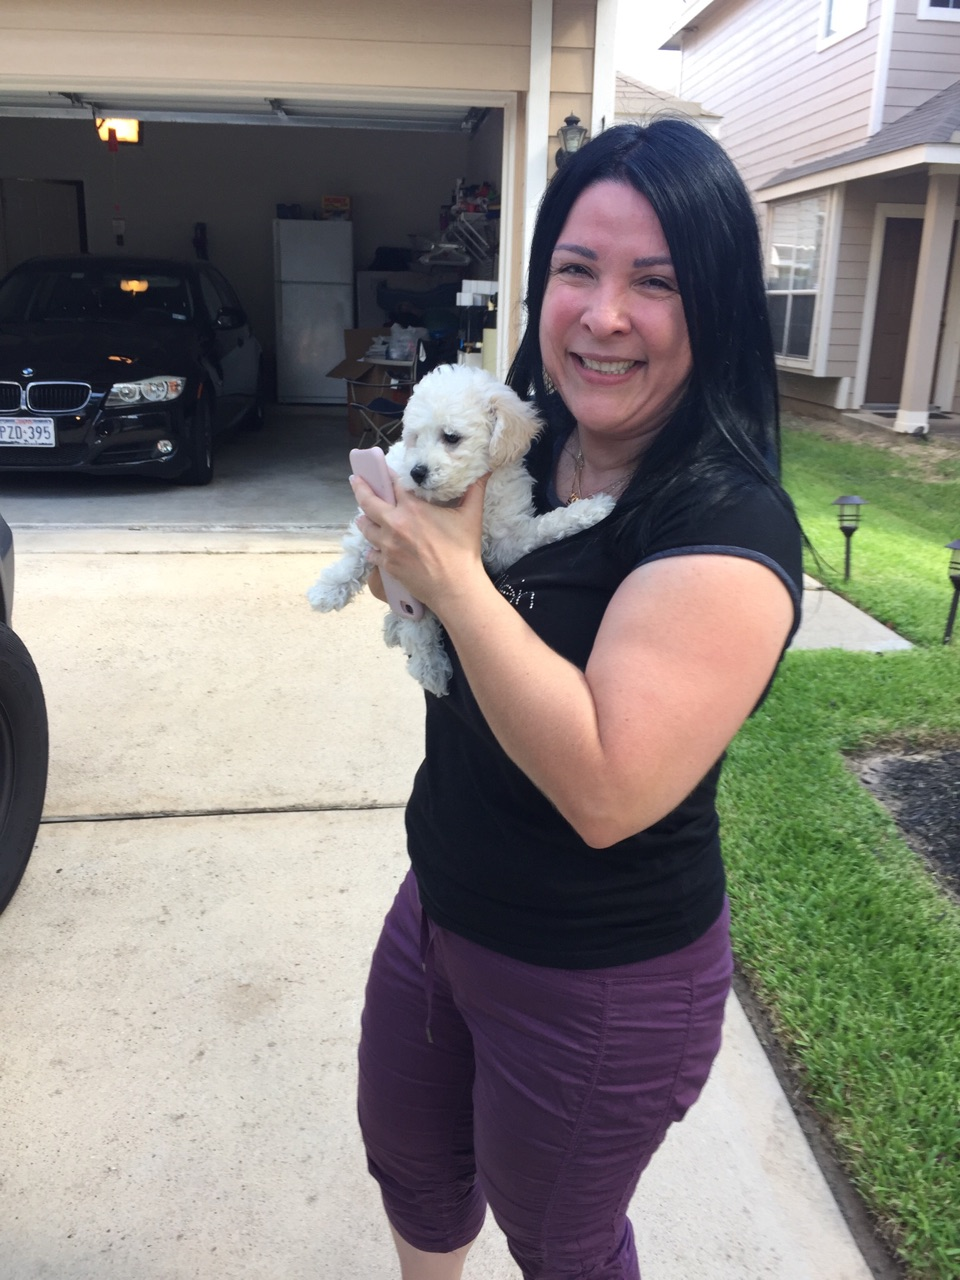 Claudia Espinosa and her new Bichon Frise puppy 'Louis Vitton'!